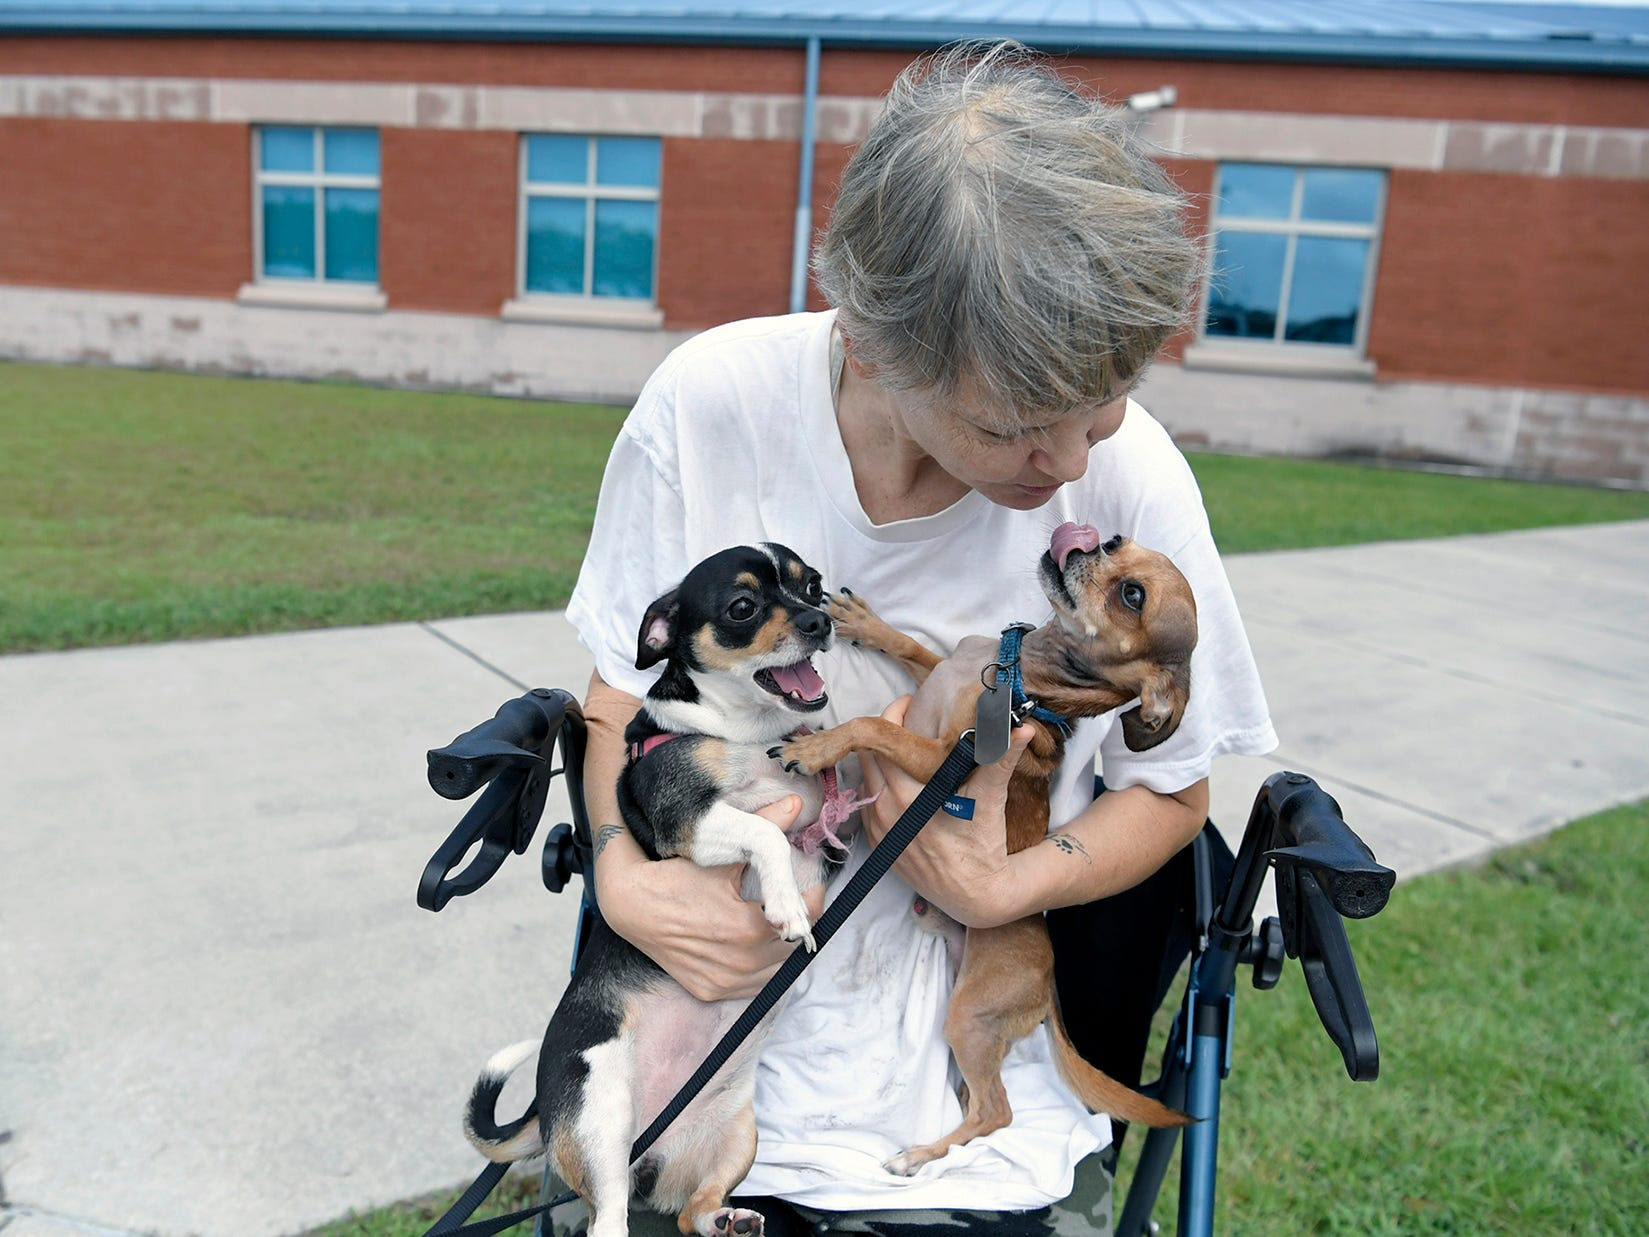 Tinny Bell, 49, holds her dogs, CC and Peanut, at a shelter in Newport, N.C., on Monday, Sept. 17, 2018. Bell was rescued by firefighters after floodwater came into her apartment.